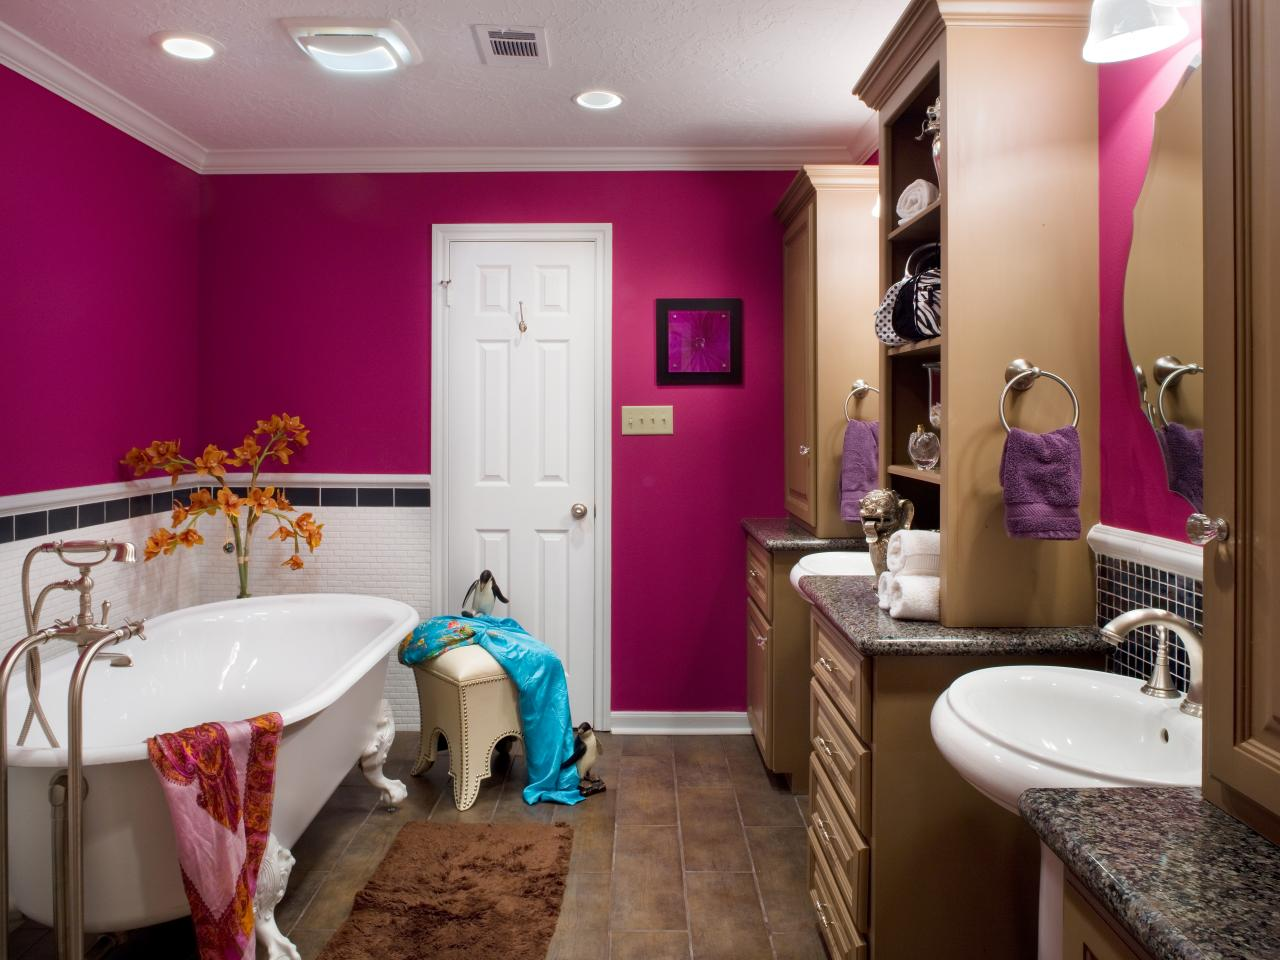 Bathroom Design Styles Pictures Ideas Tips From HGTV HGTV - Girls bathroom sets for small bathroom ideas